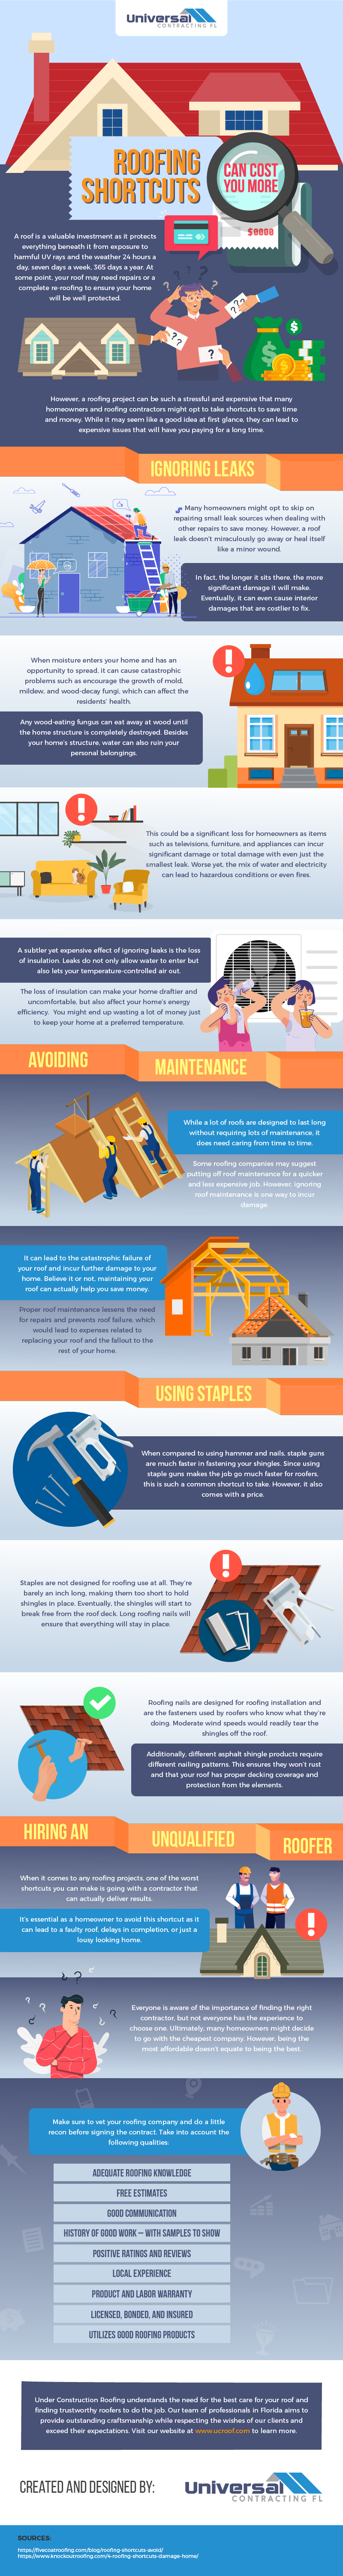 Roofing Shortcuts can Cost You More